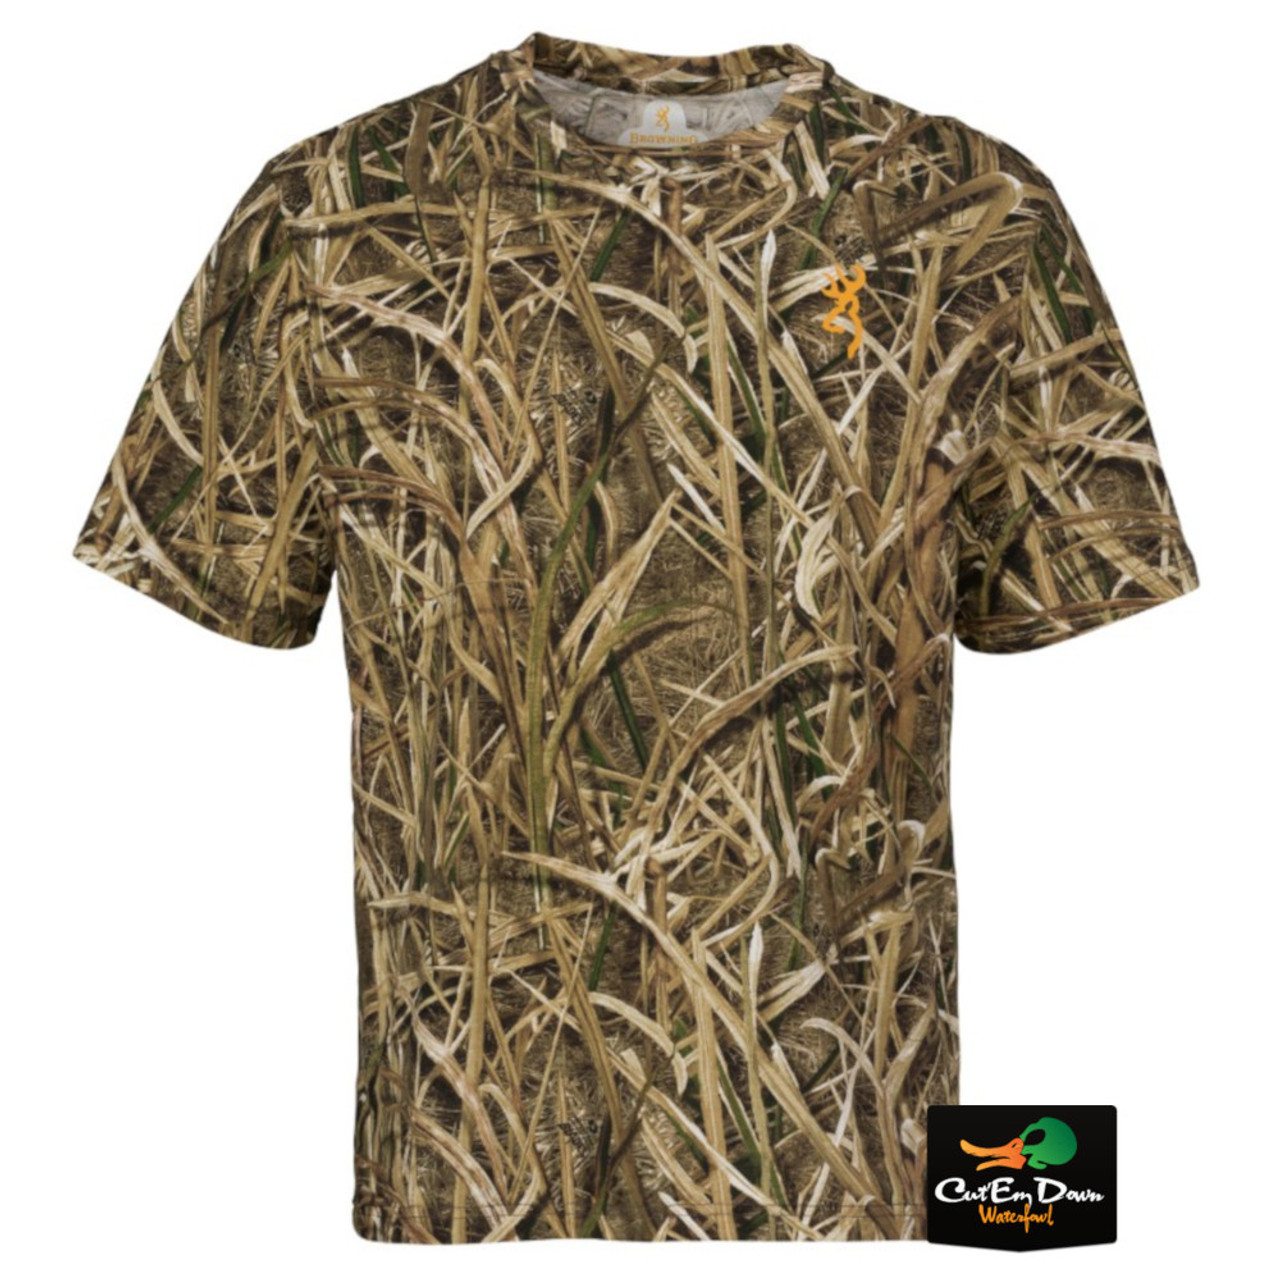 68c87877e436c Browning Wasatch CB Short Sleeve T-Shirt - Mossy Oak Shadow Grass ...